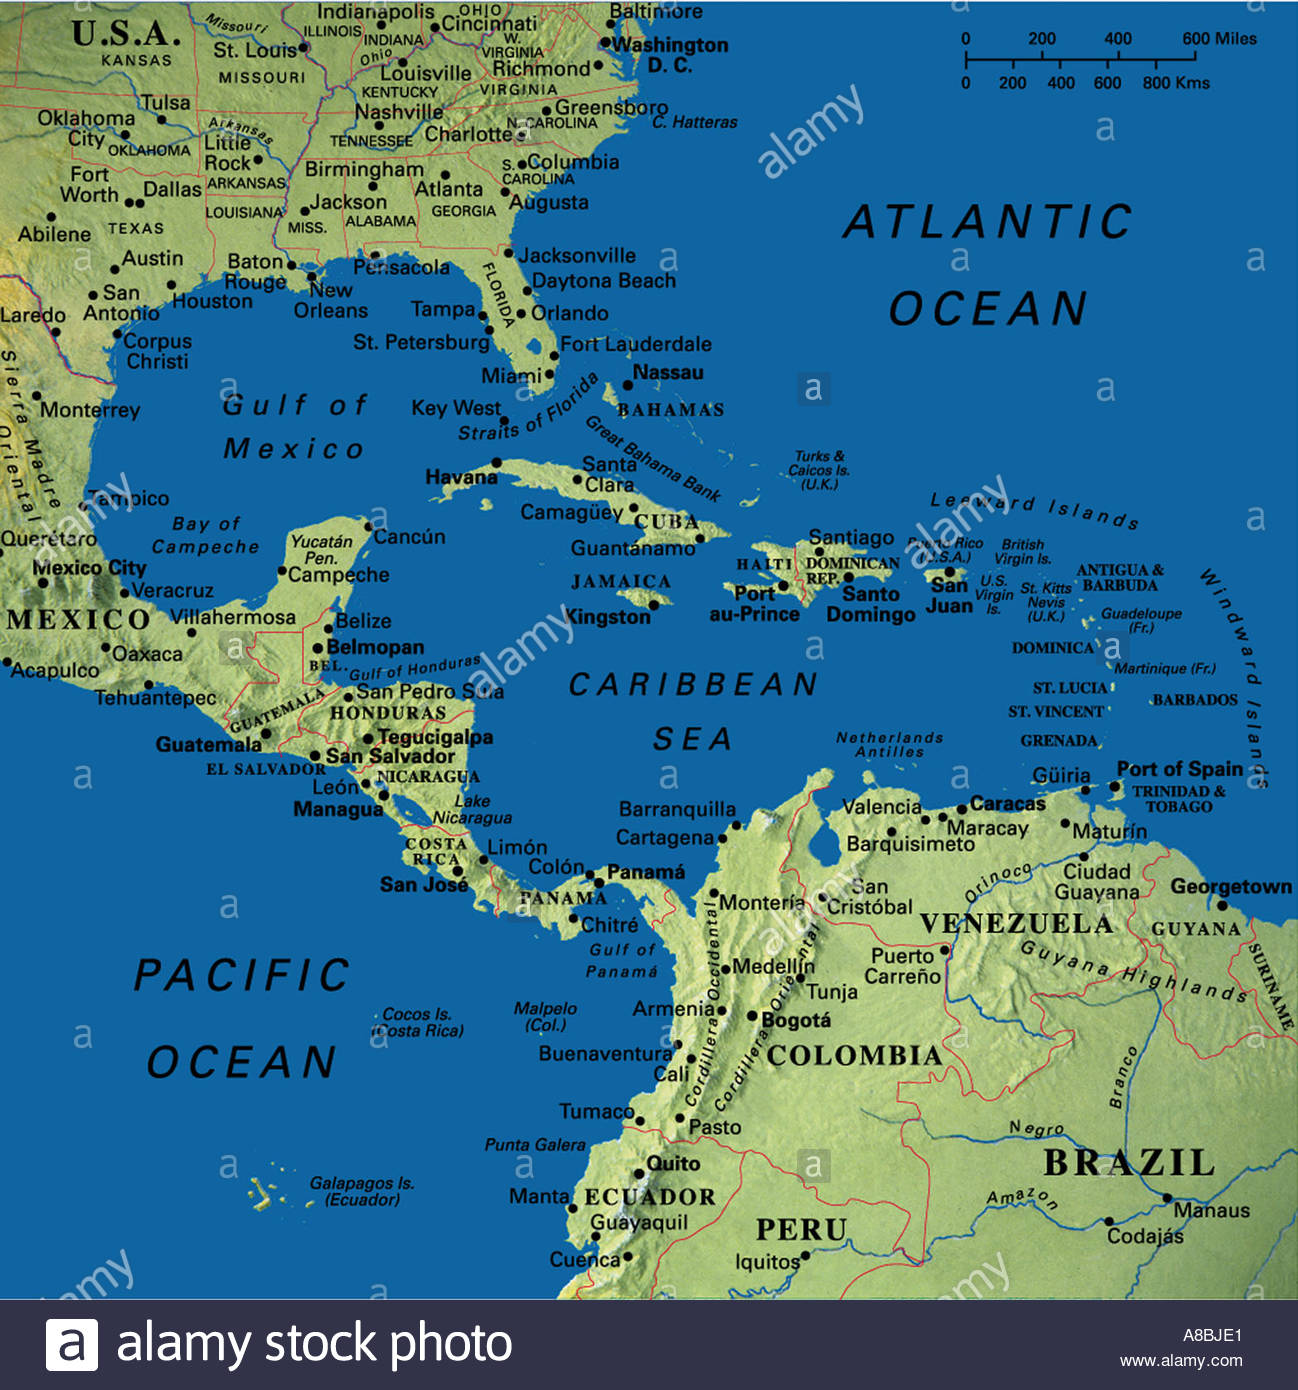 map maps usa florida canada mexico caribbean cuba south america panama canal columbia venezuela